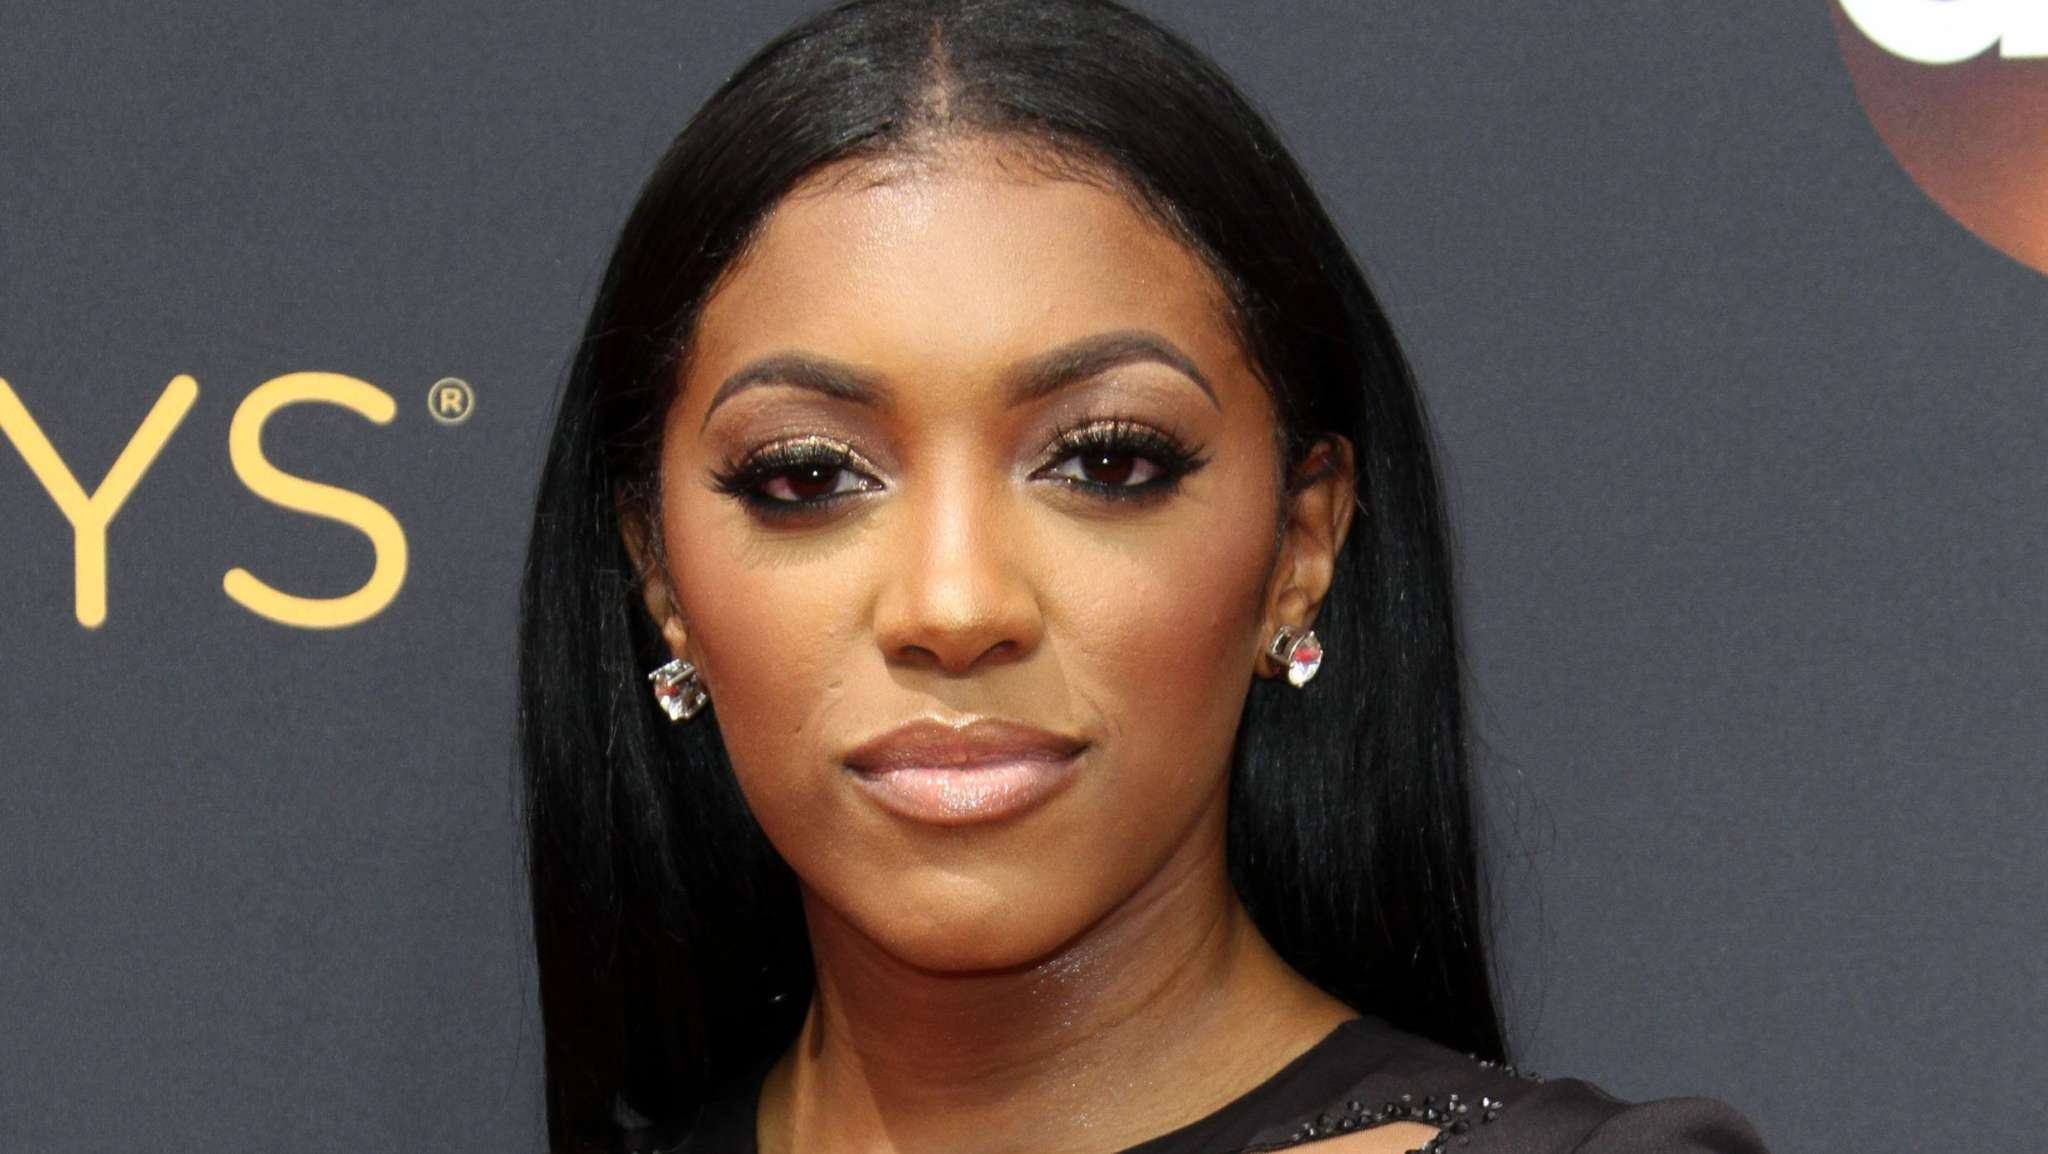 Porsha Williams Shares A Gorgeous New Photo With Pilar Jhena For Her 38 Birthday After Saying She'll Be A Married Woman Soon